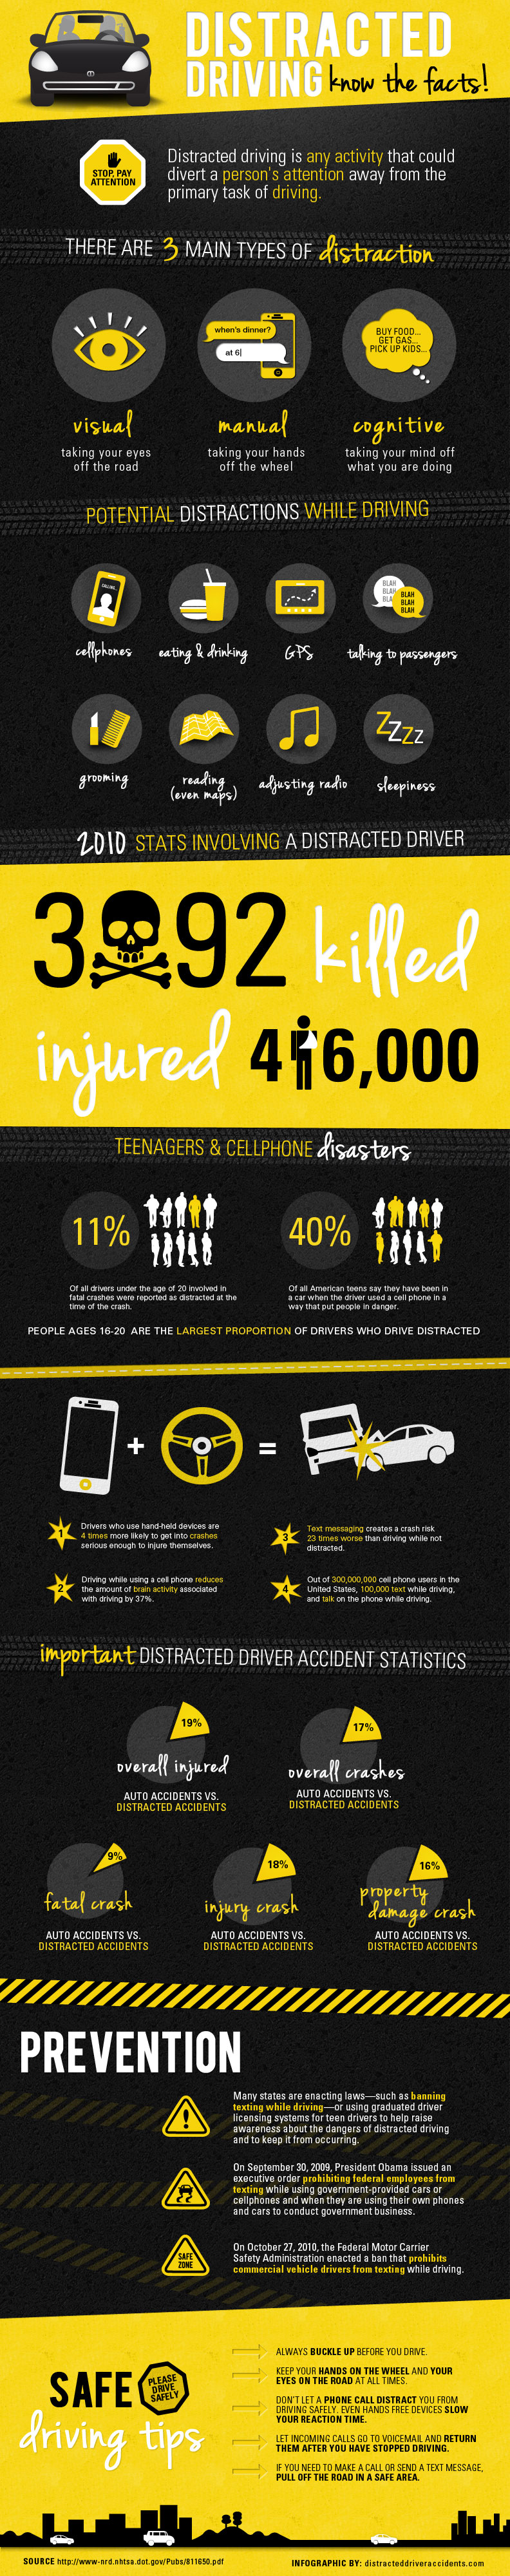 Distracted-Driving-infographic2